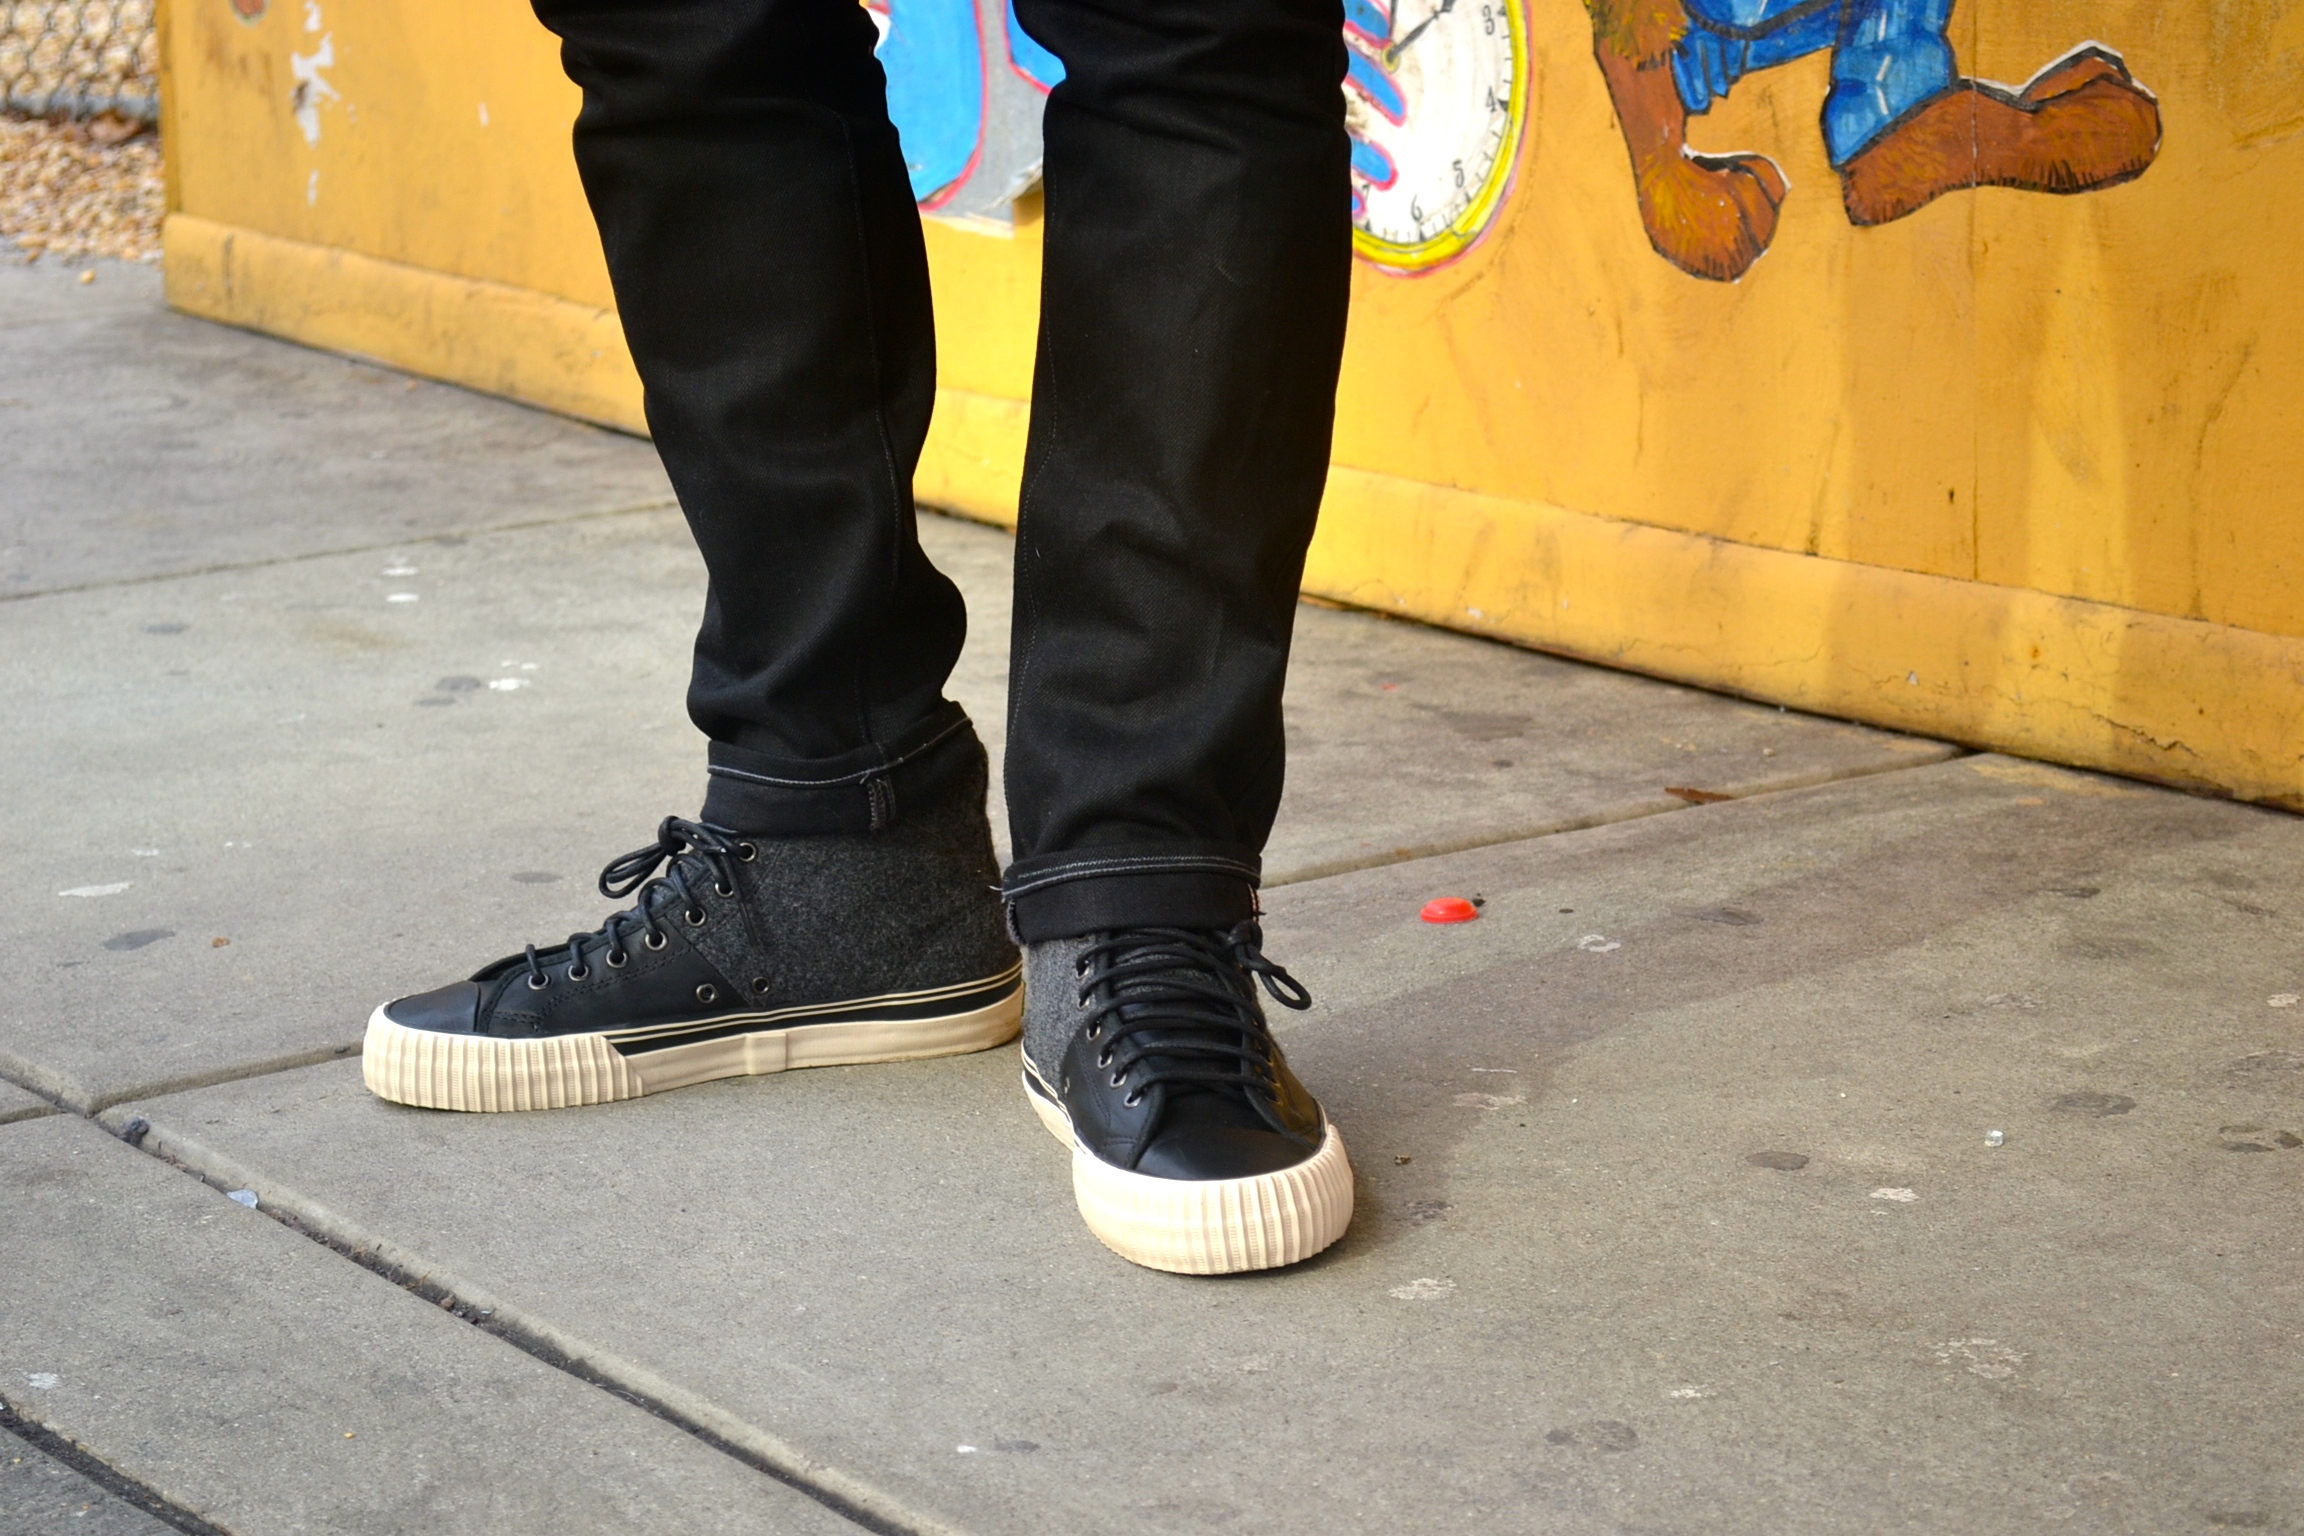 Sabir Peele in Wool/Leather Pf Flyers Center Hi